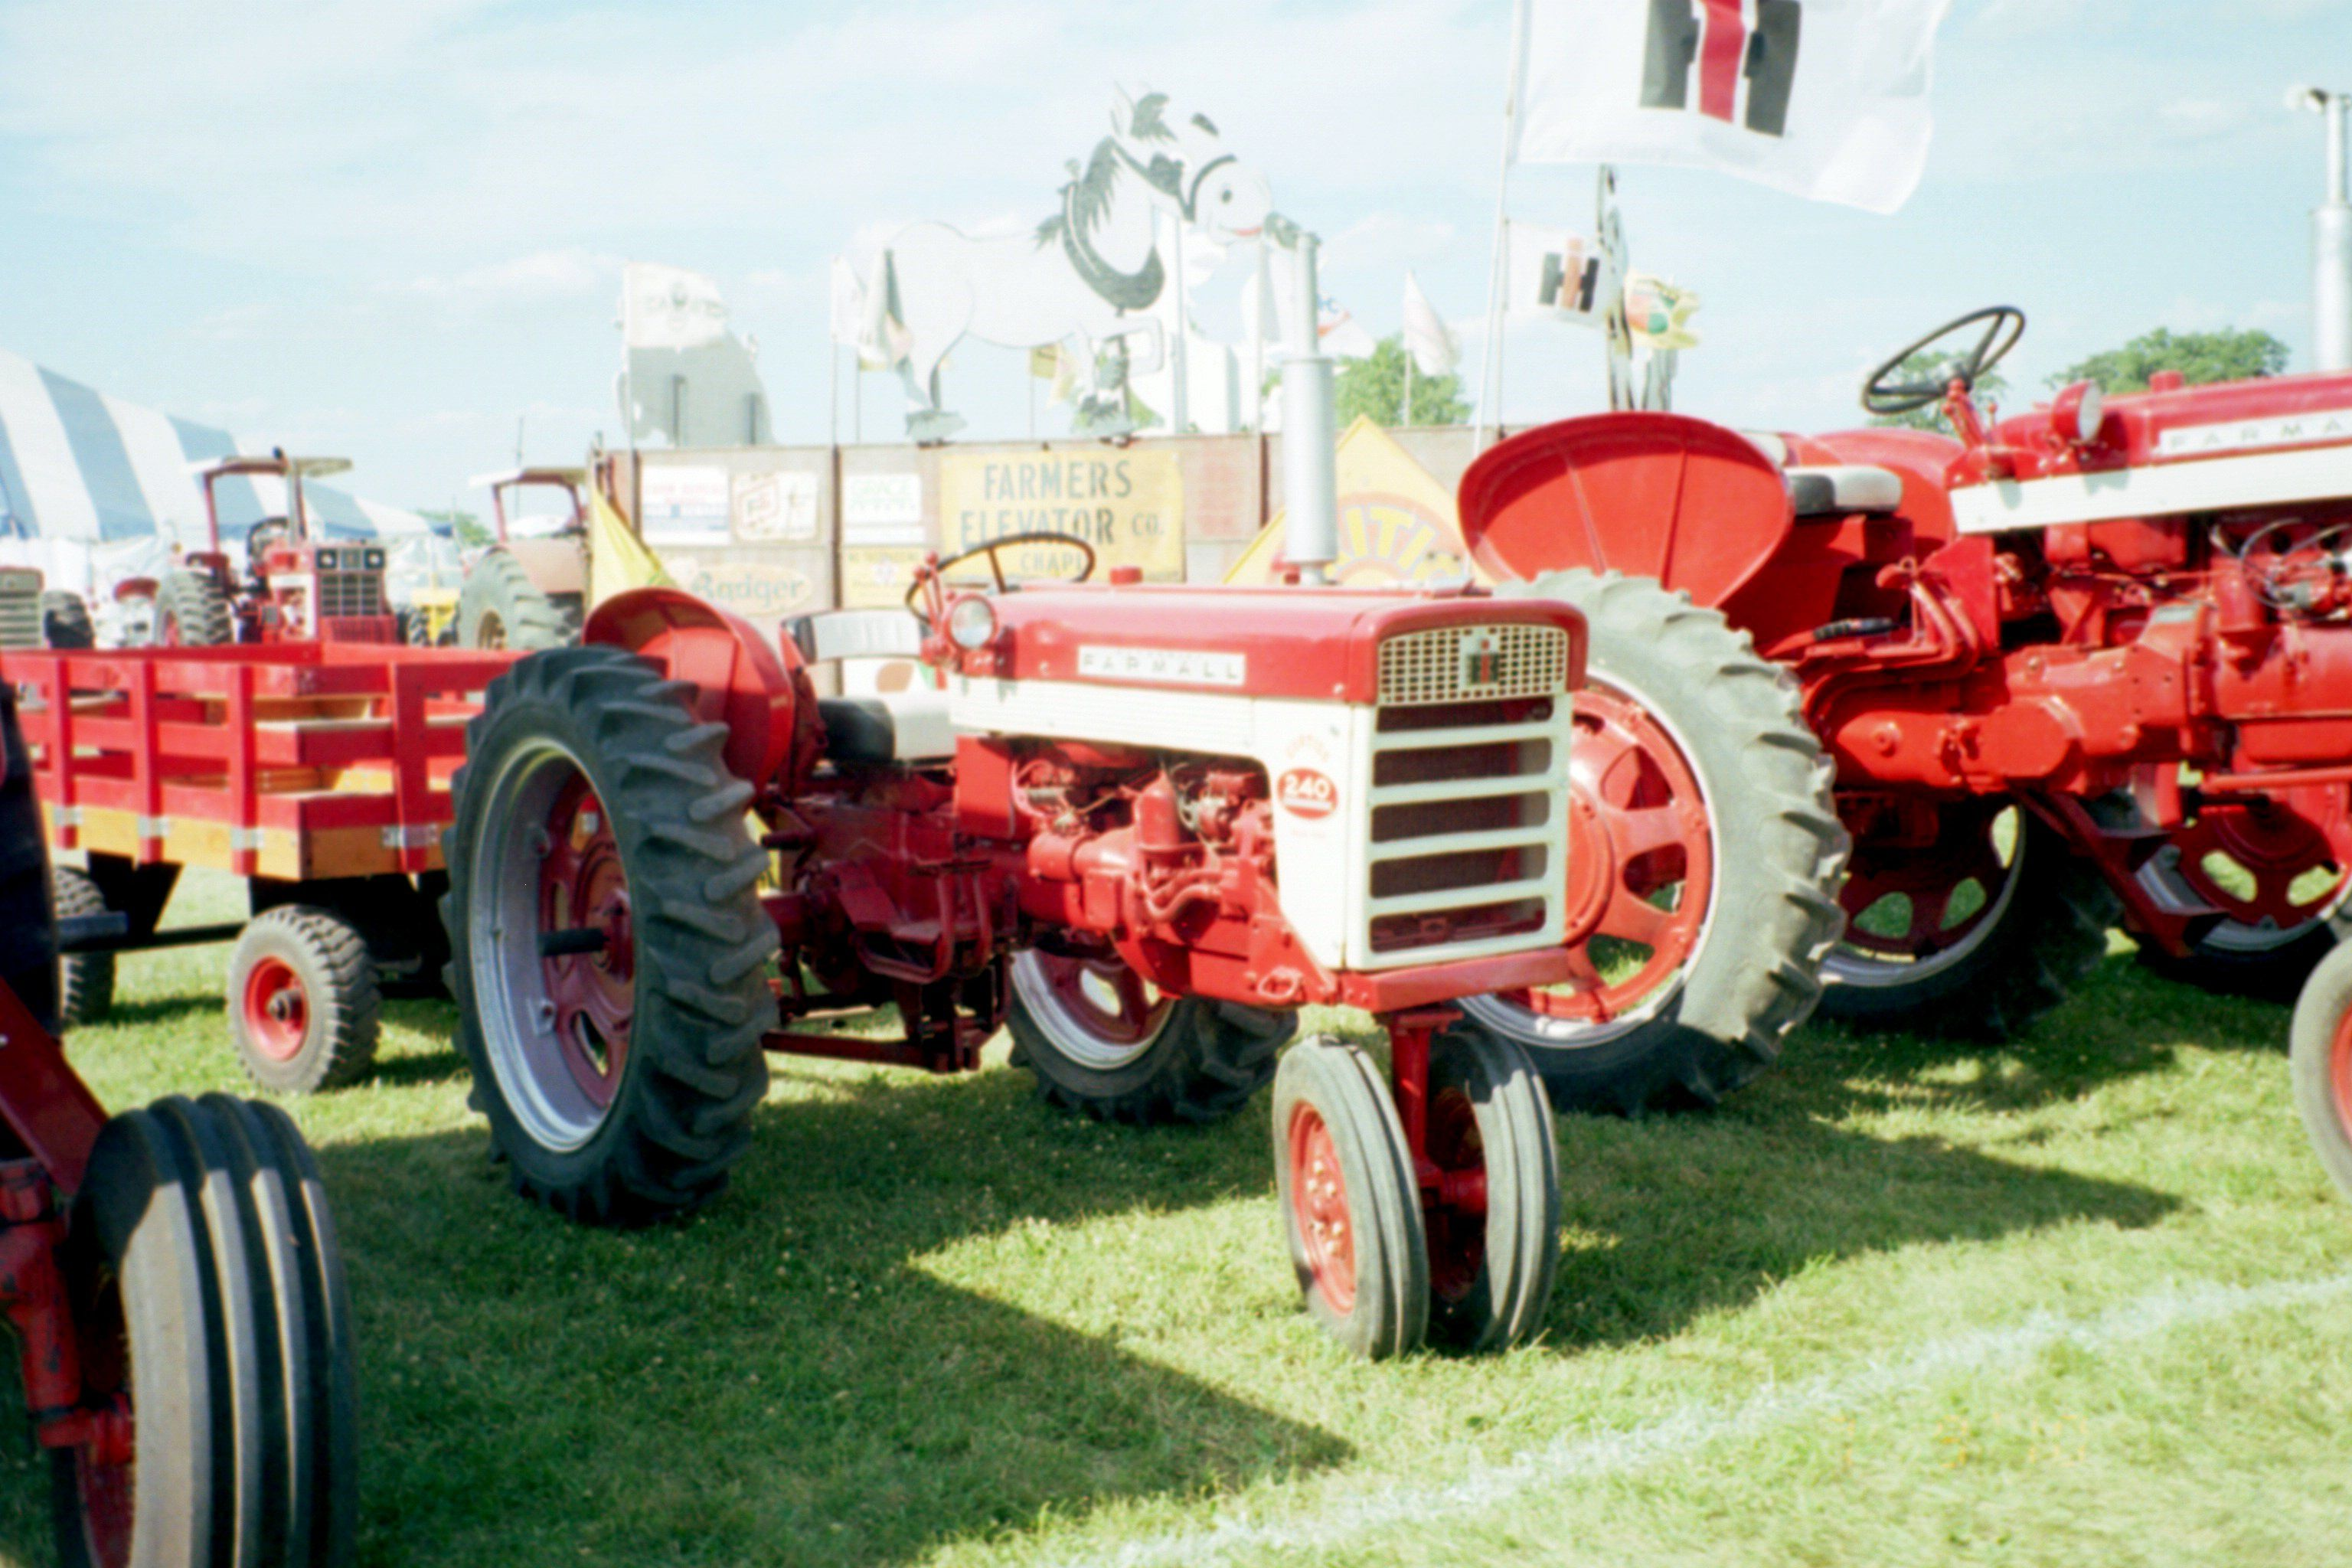 hight resolution of  farmall 460 electrical system john deere farmall 240 tractor ih equipment my pictures tractors red